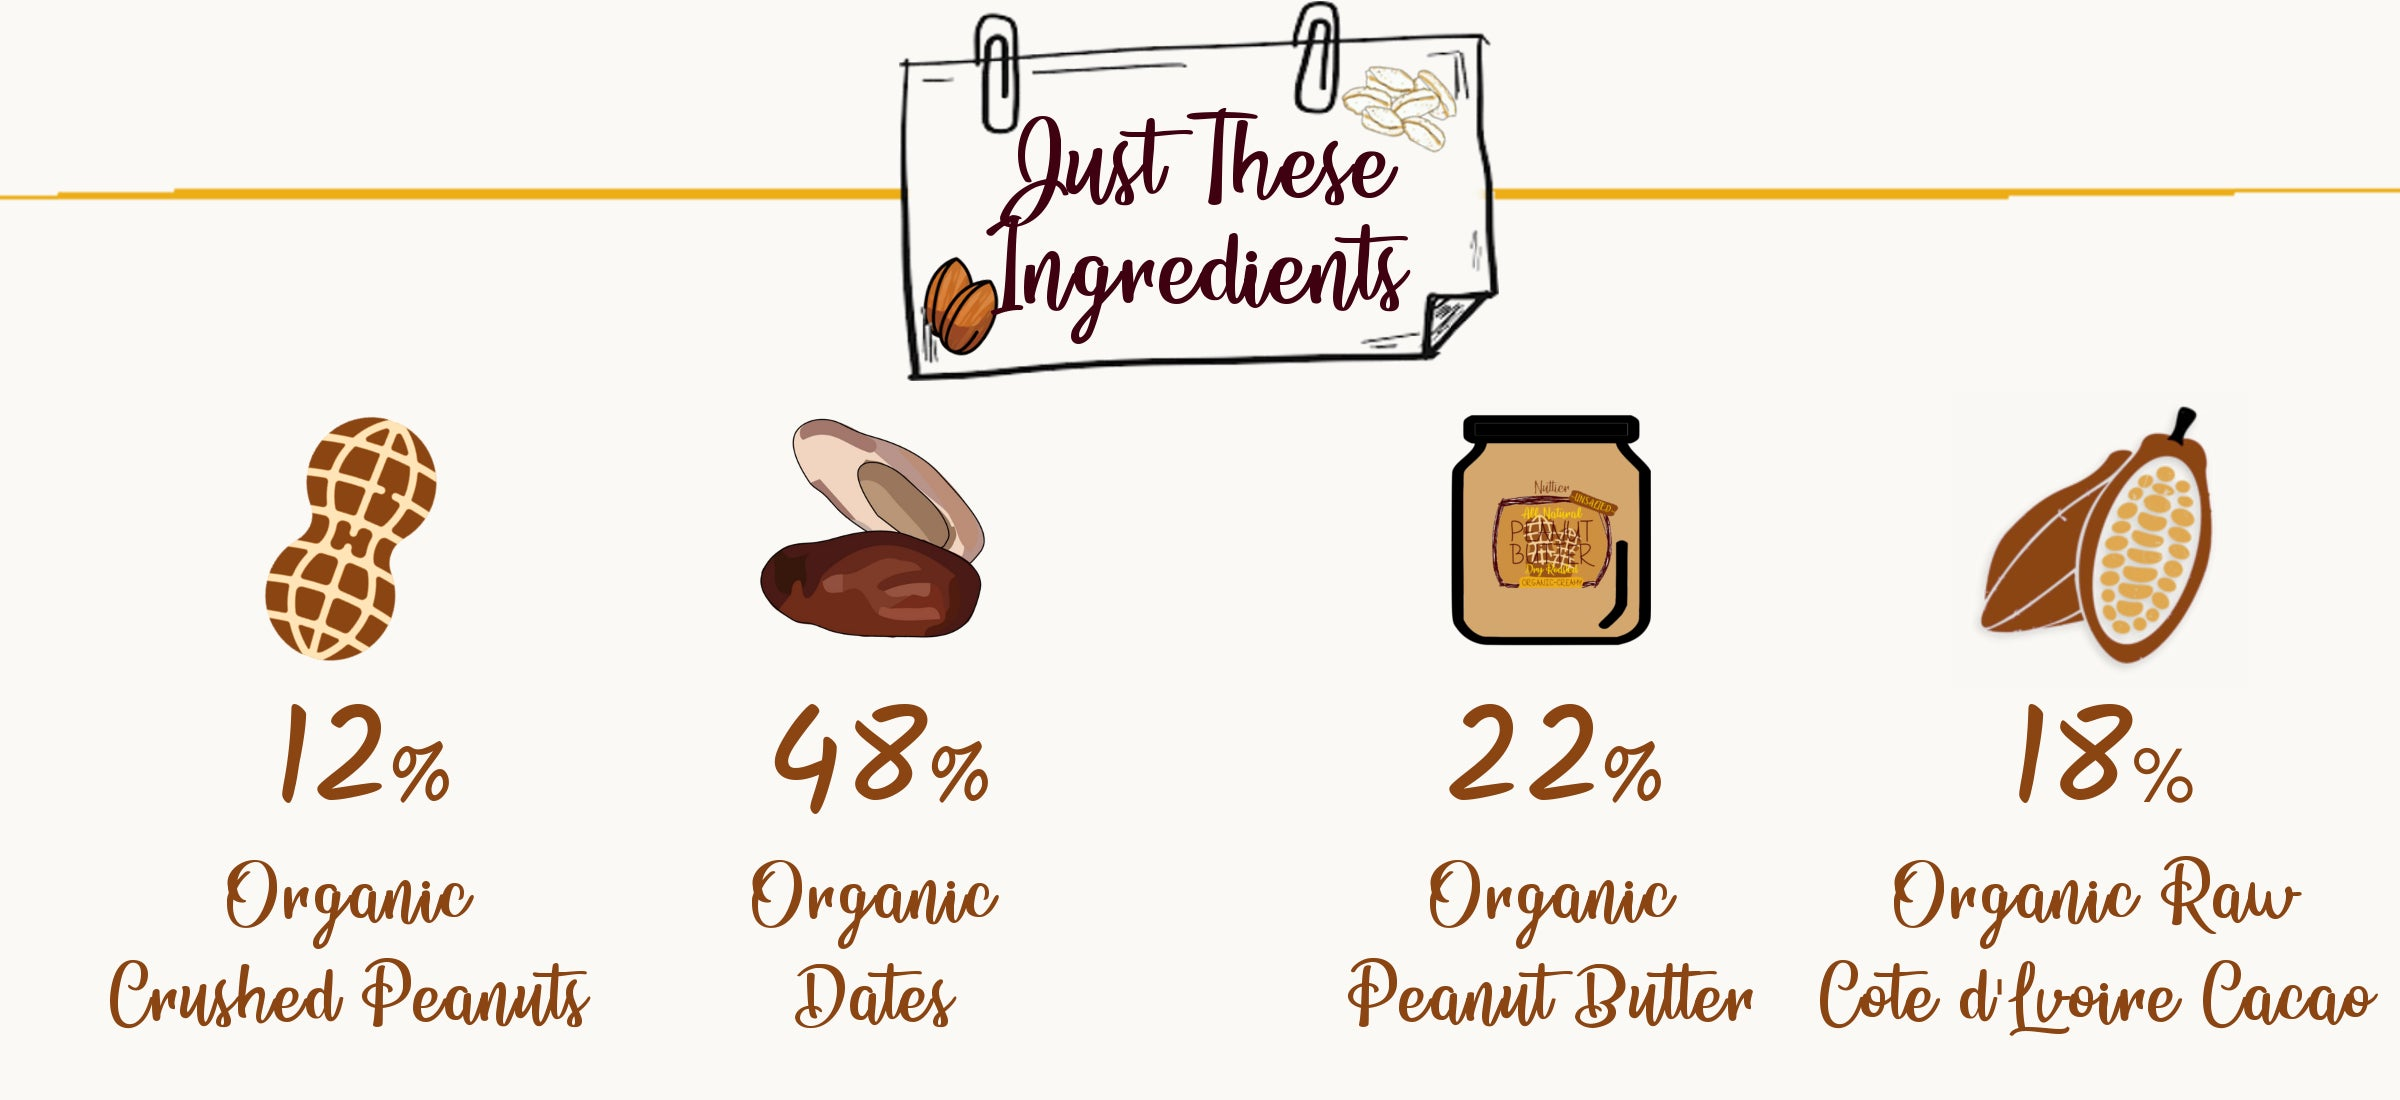 Nuttier Organic Raw Cacao Peanut Butter Brownie Bites Nutrition Information